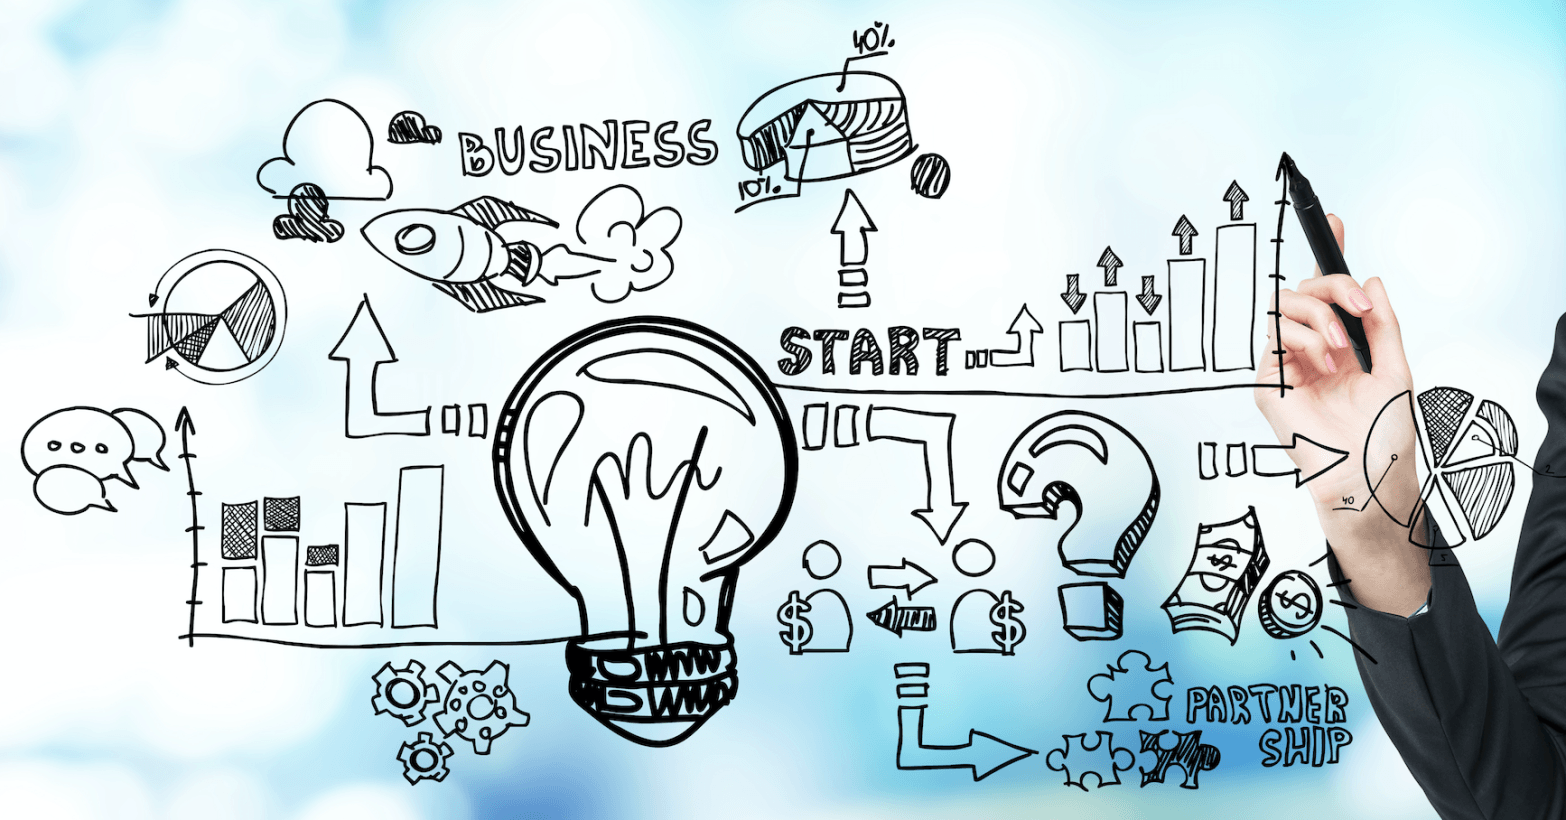 Start your own business with these 4 great offers